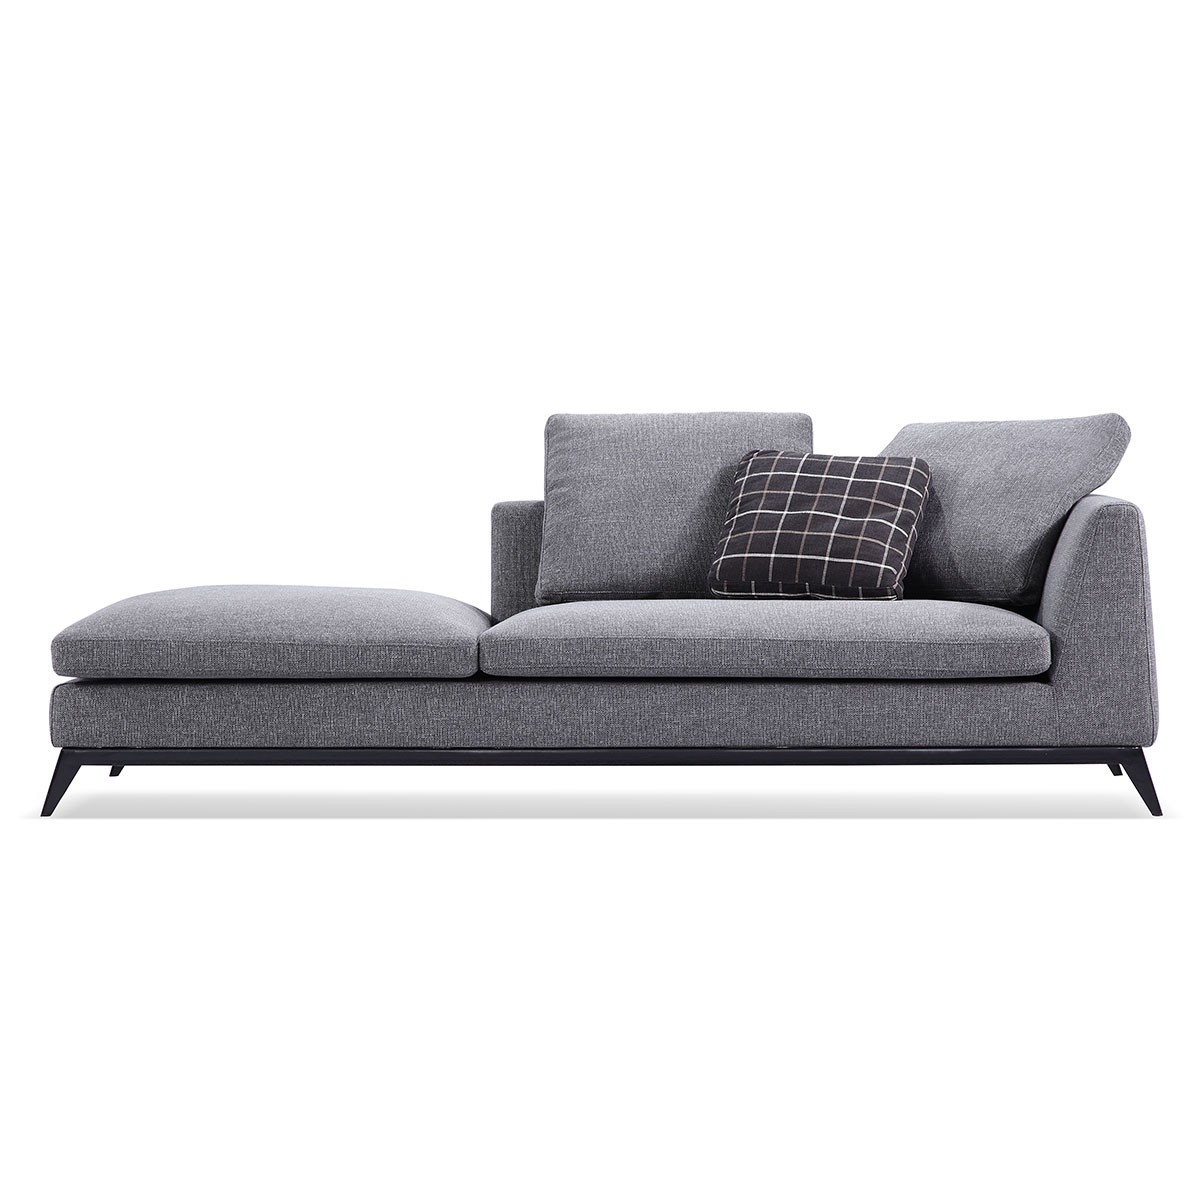 Fabric Left-facing Chaise Sectional with Pillows - Grey (BO-613)